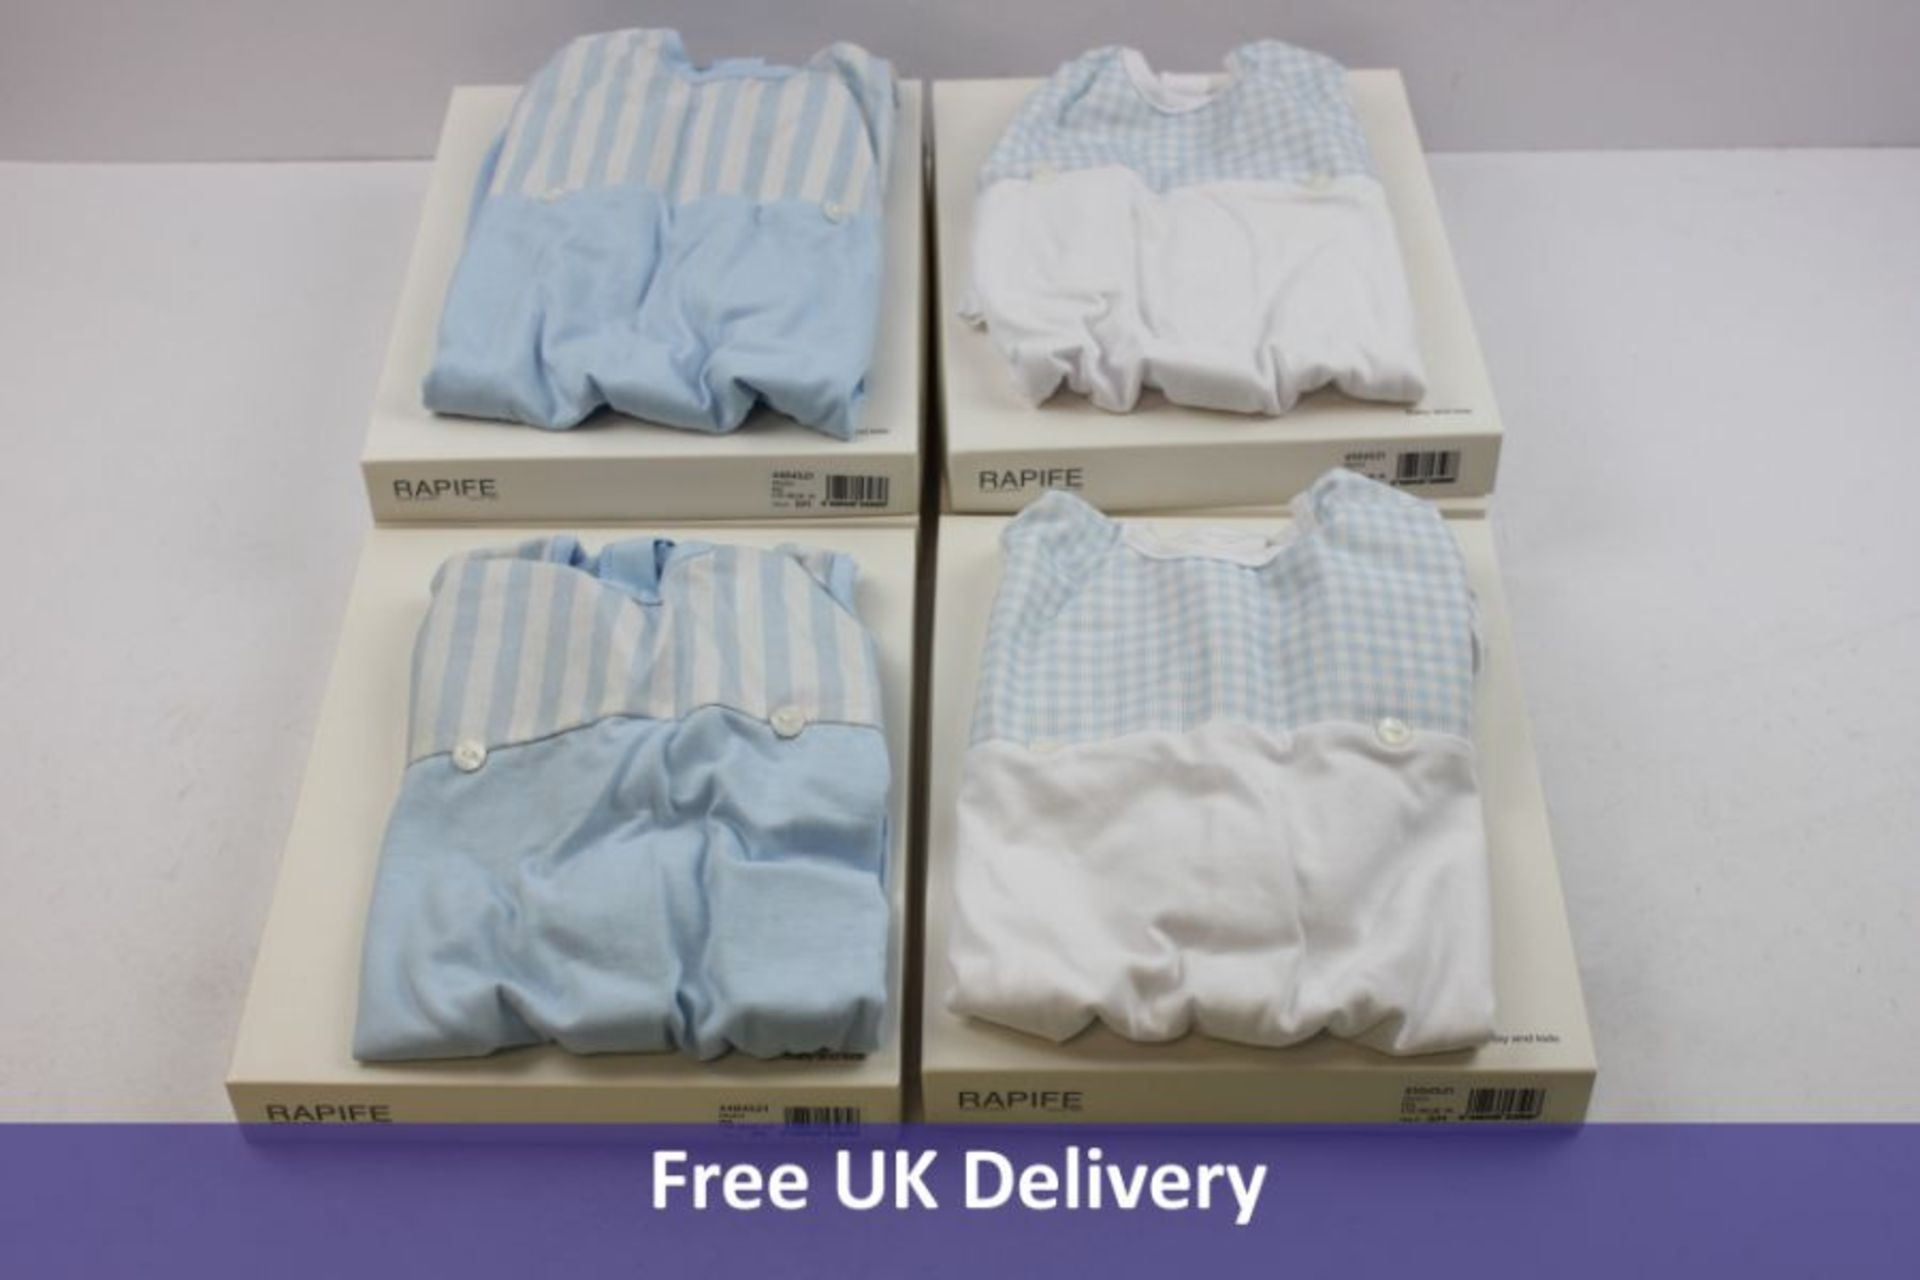 Six items of Rapife Baby Clothing